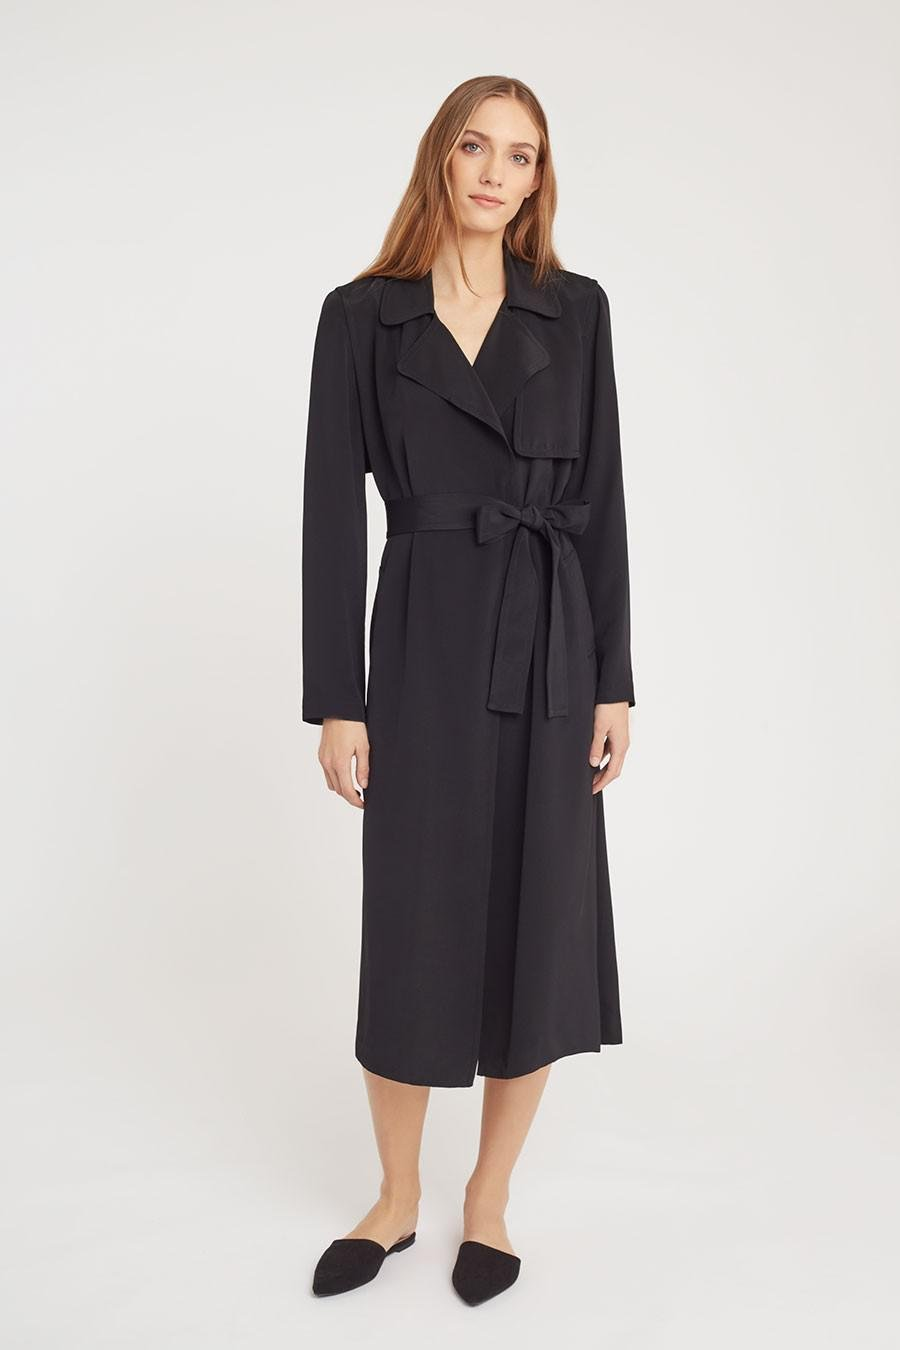 Women's Silk Classic Trench in Black | Size: 2